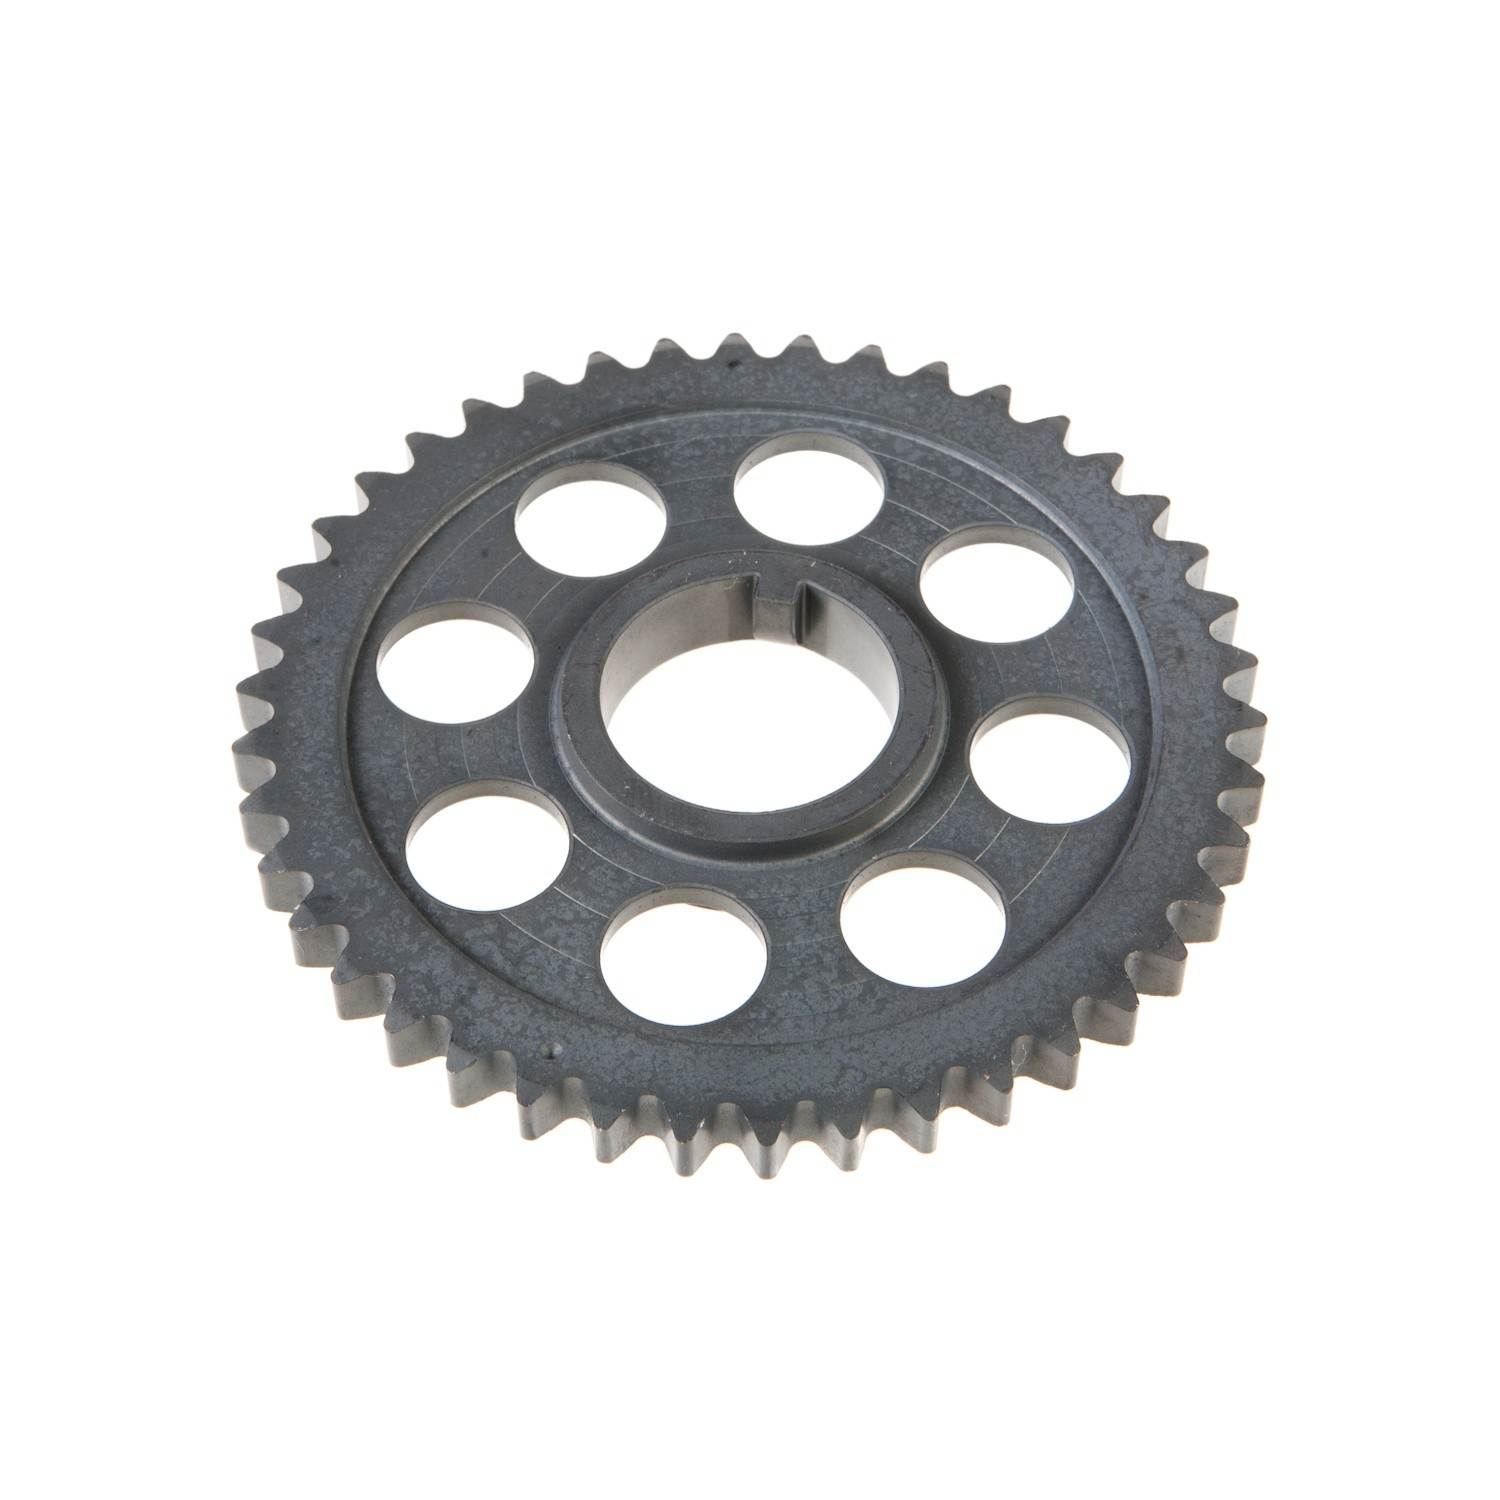 MELLING - Stock Engine Timing Camshaft Sprocket - MEL S766